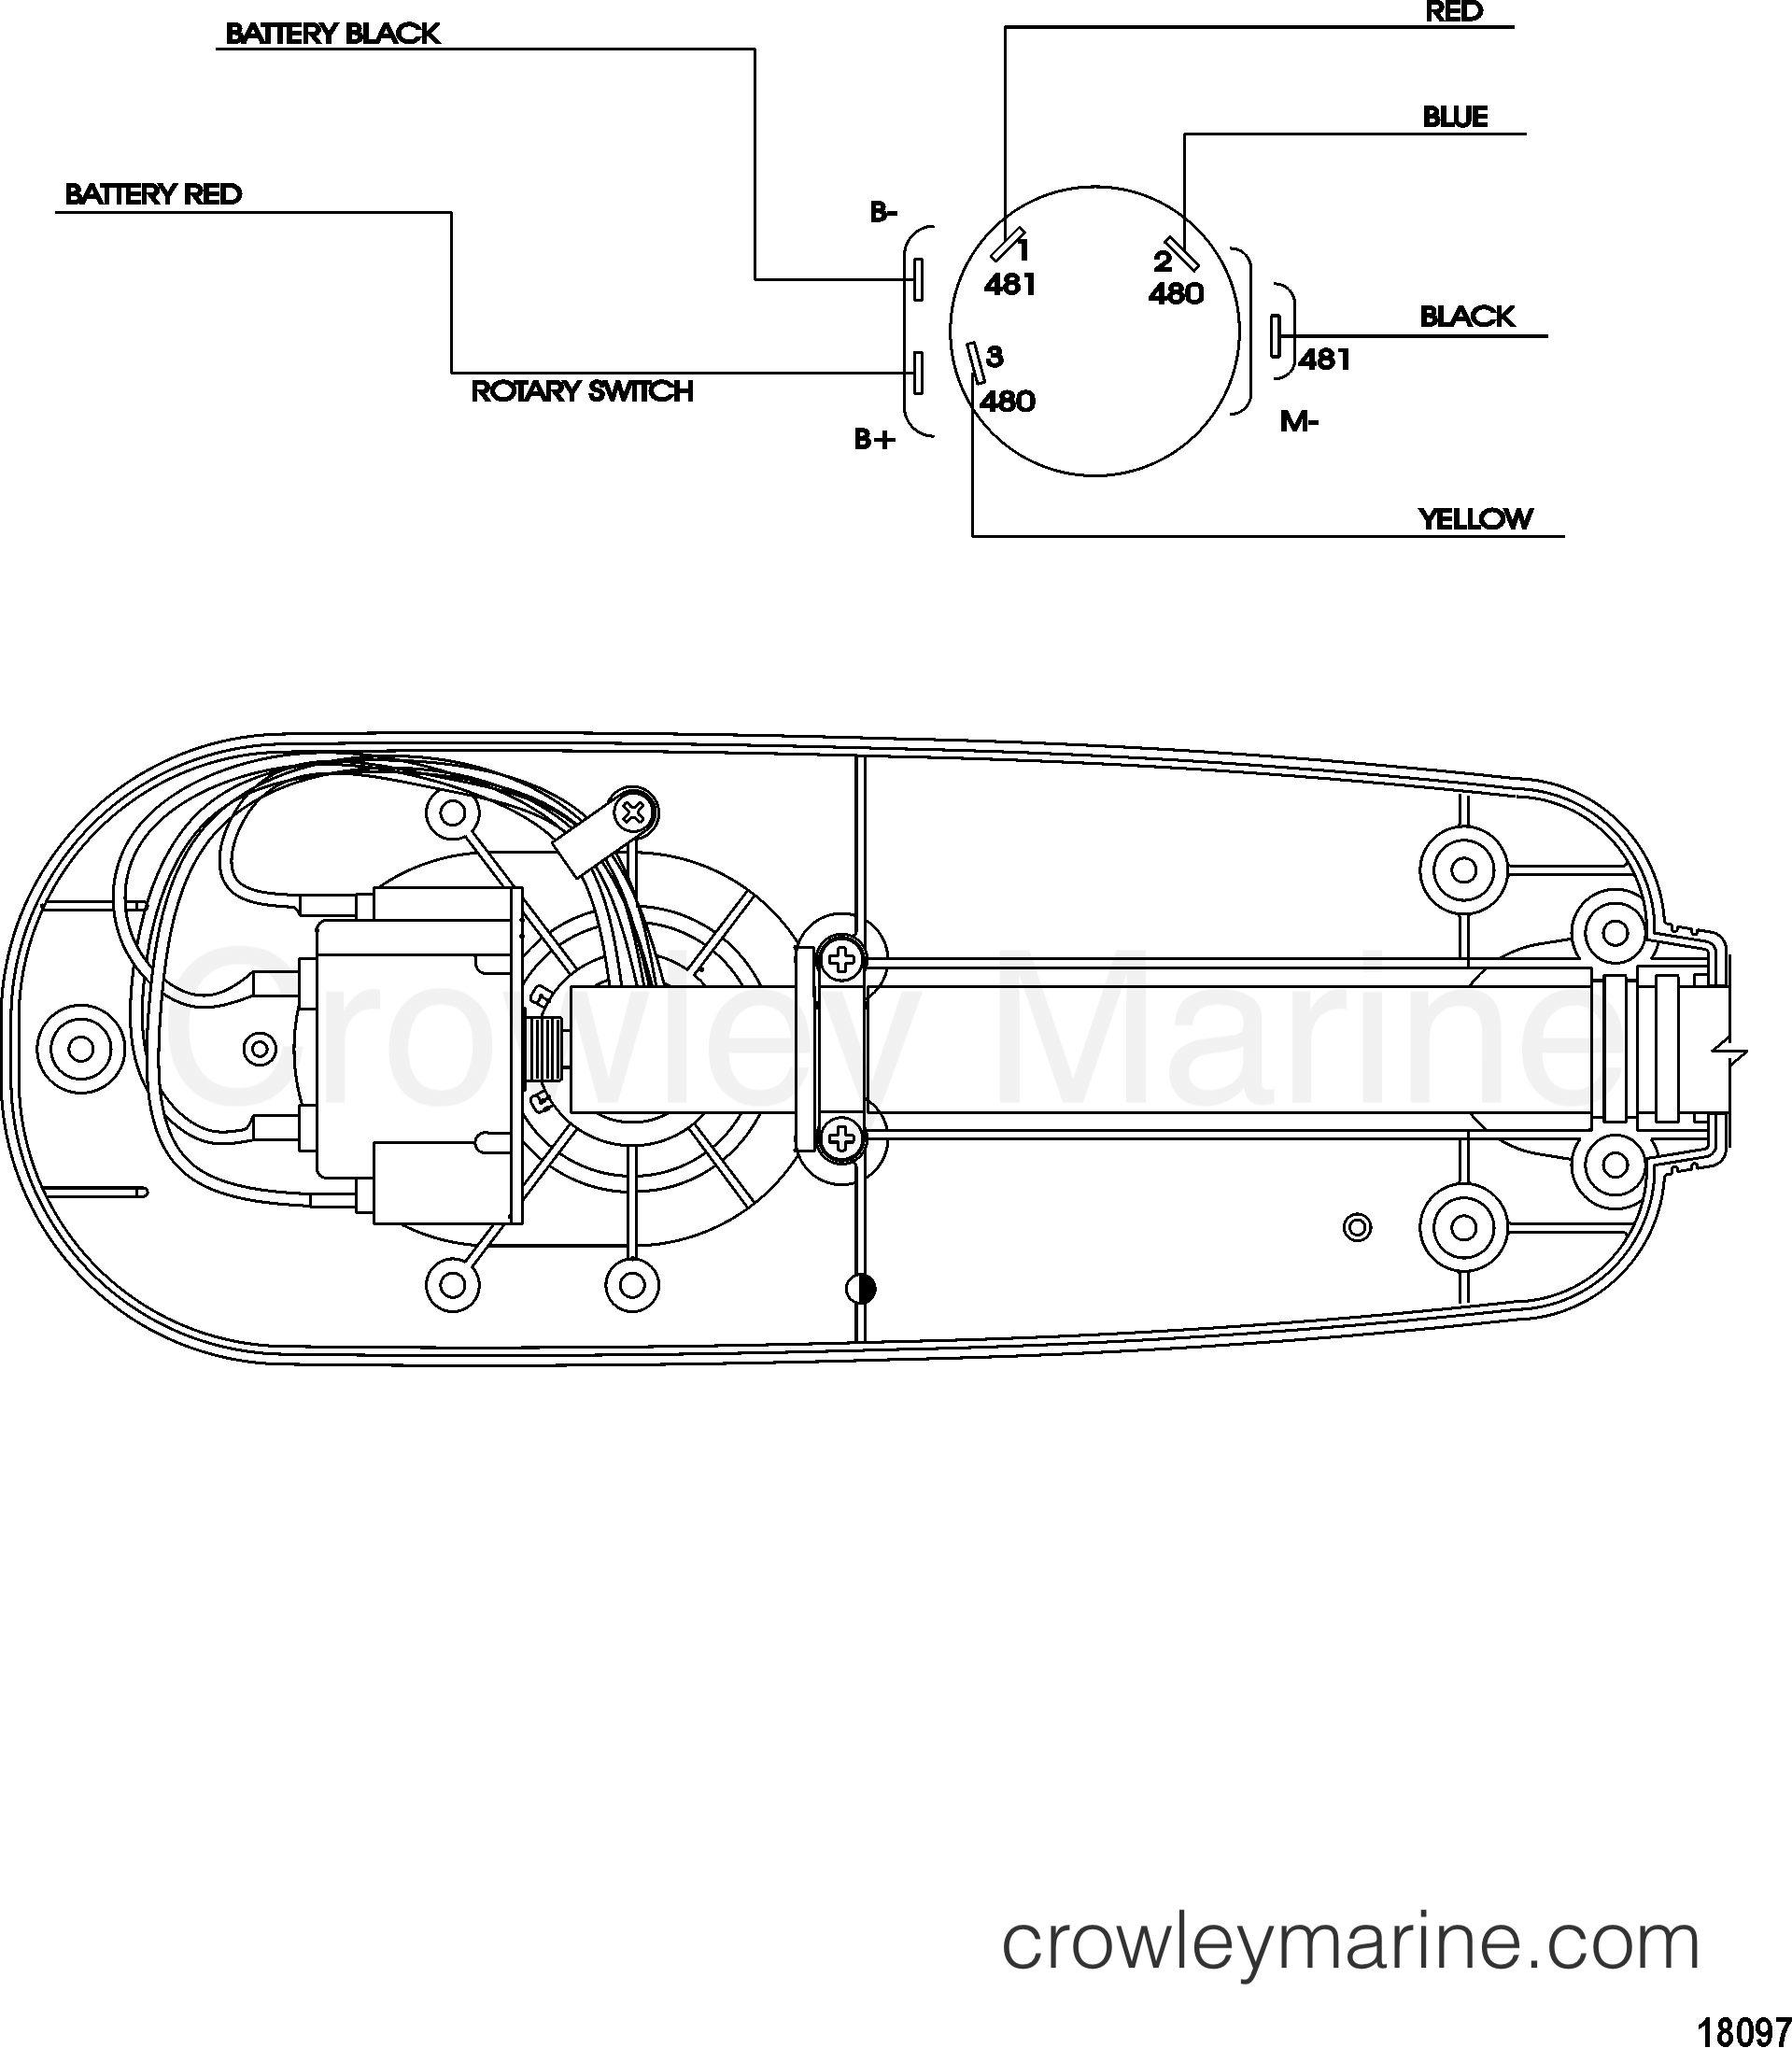 Motorguide Wiring Diagrams Online Manuual Of Diagram Amana Arb2214cw Wire Model T34 With Quick Connect 2004 12v Rh Crowleymarine Com X3